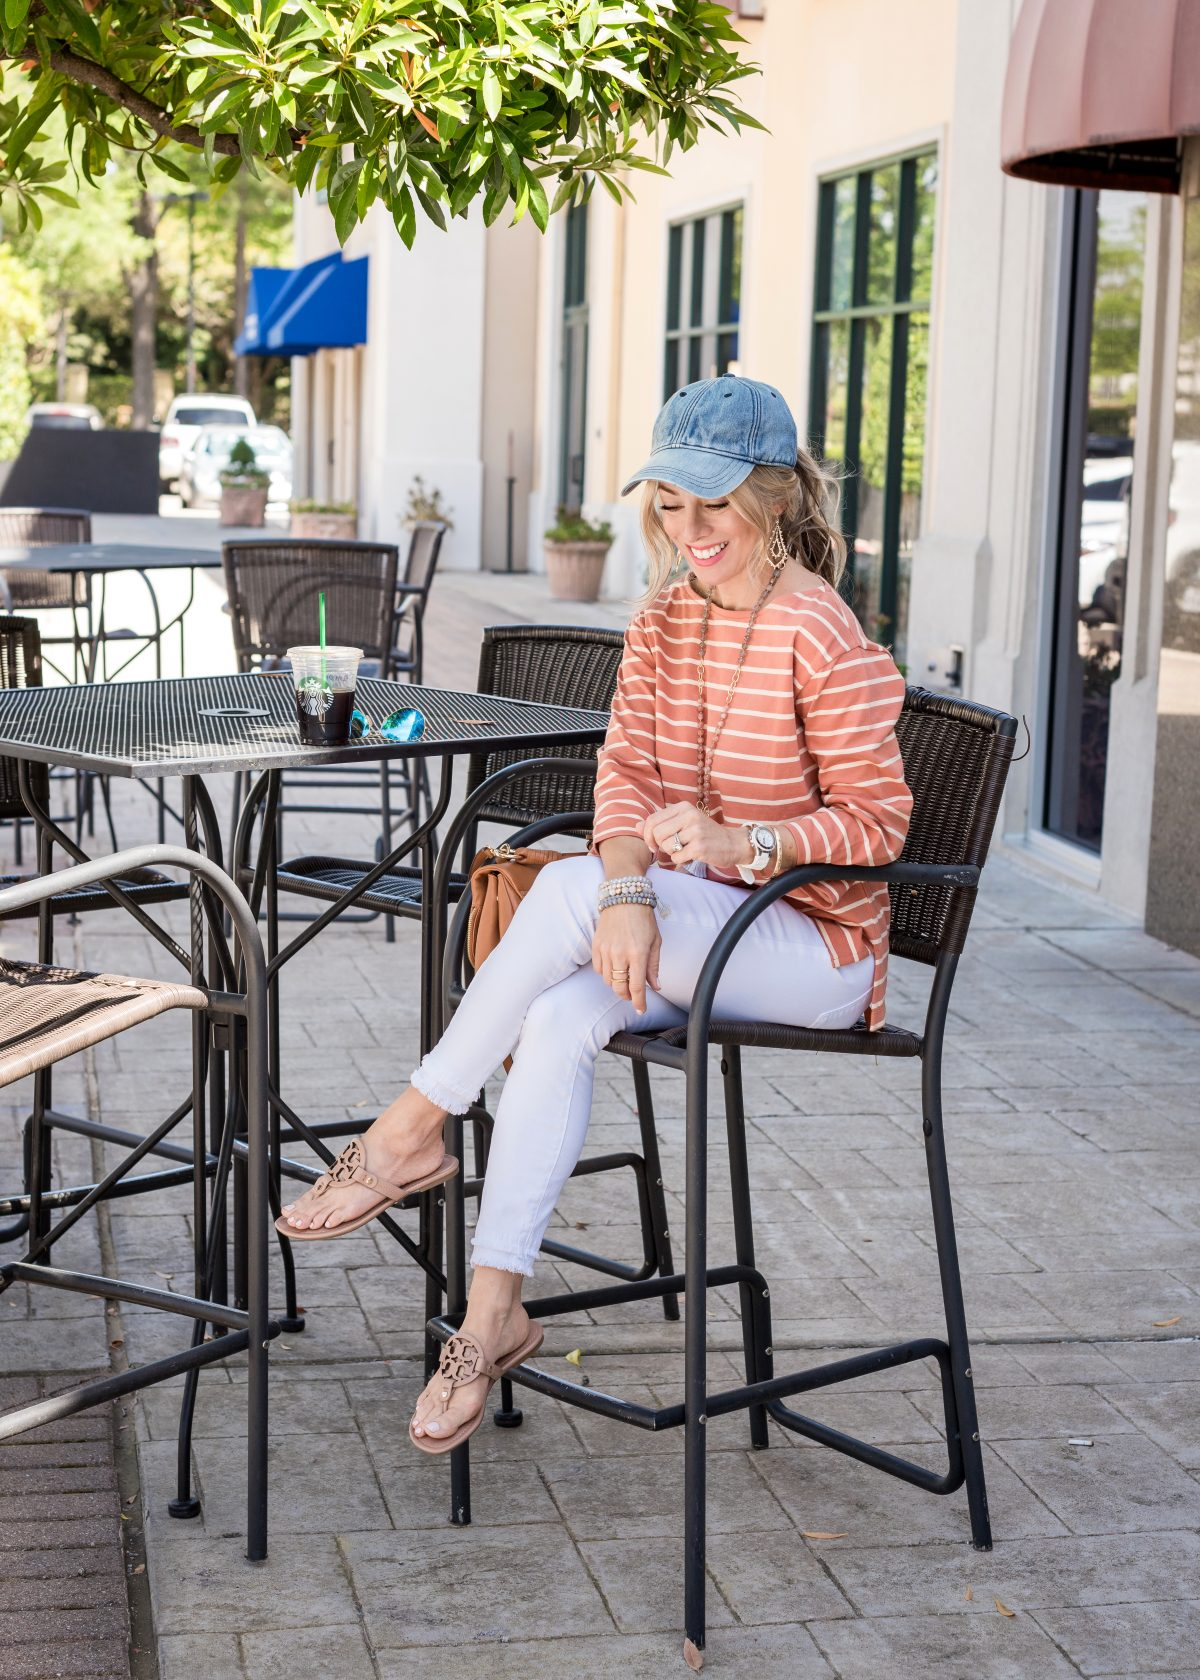 Weekend Outfit with white jeans and striped top